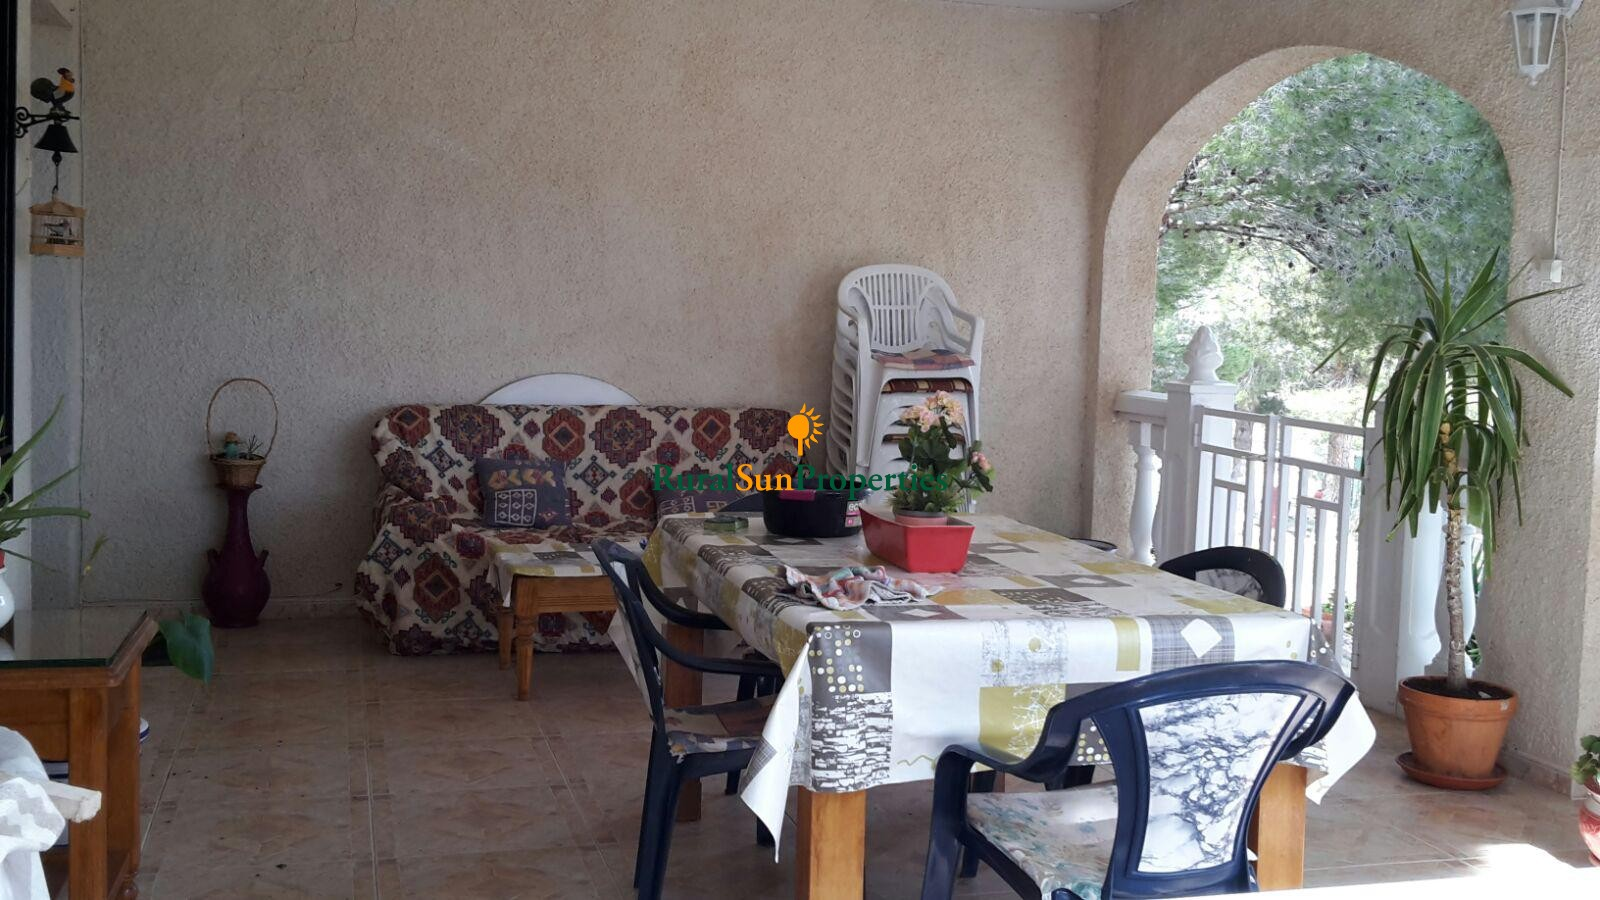 Sale country house/finca for sale in Yecla. 10,000 sq.m plot